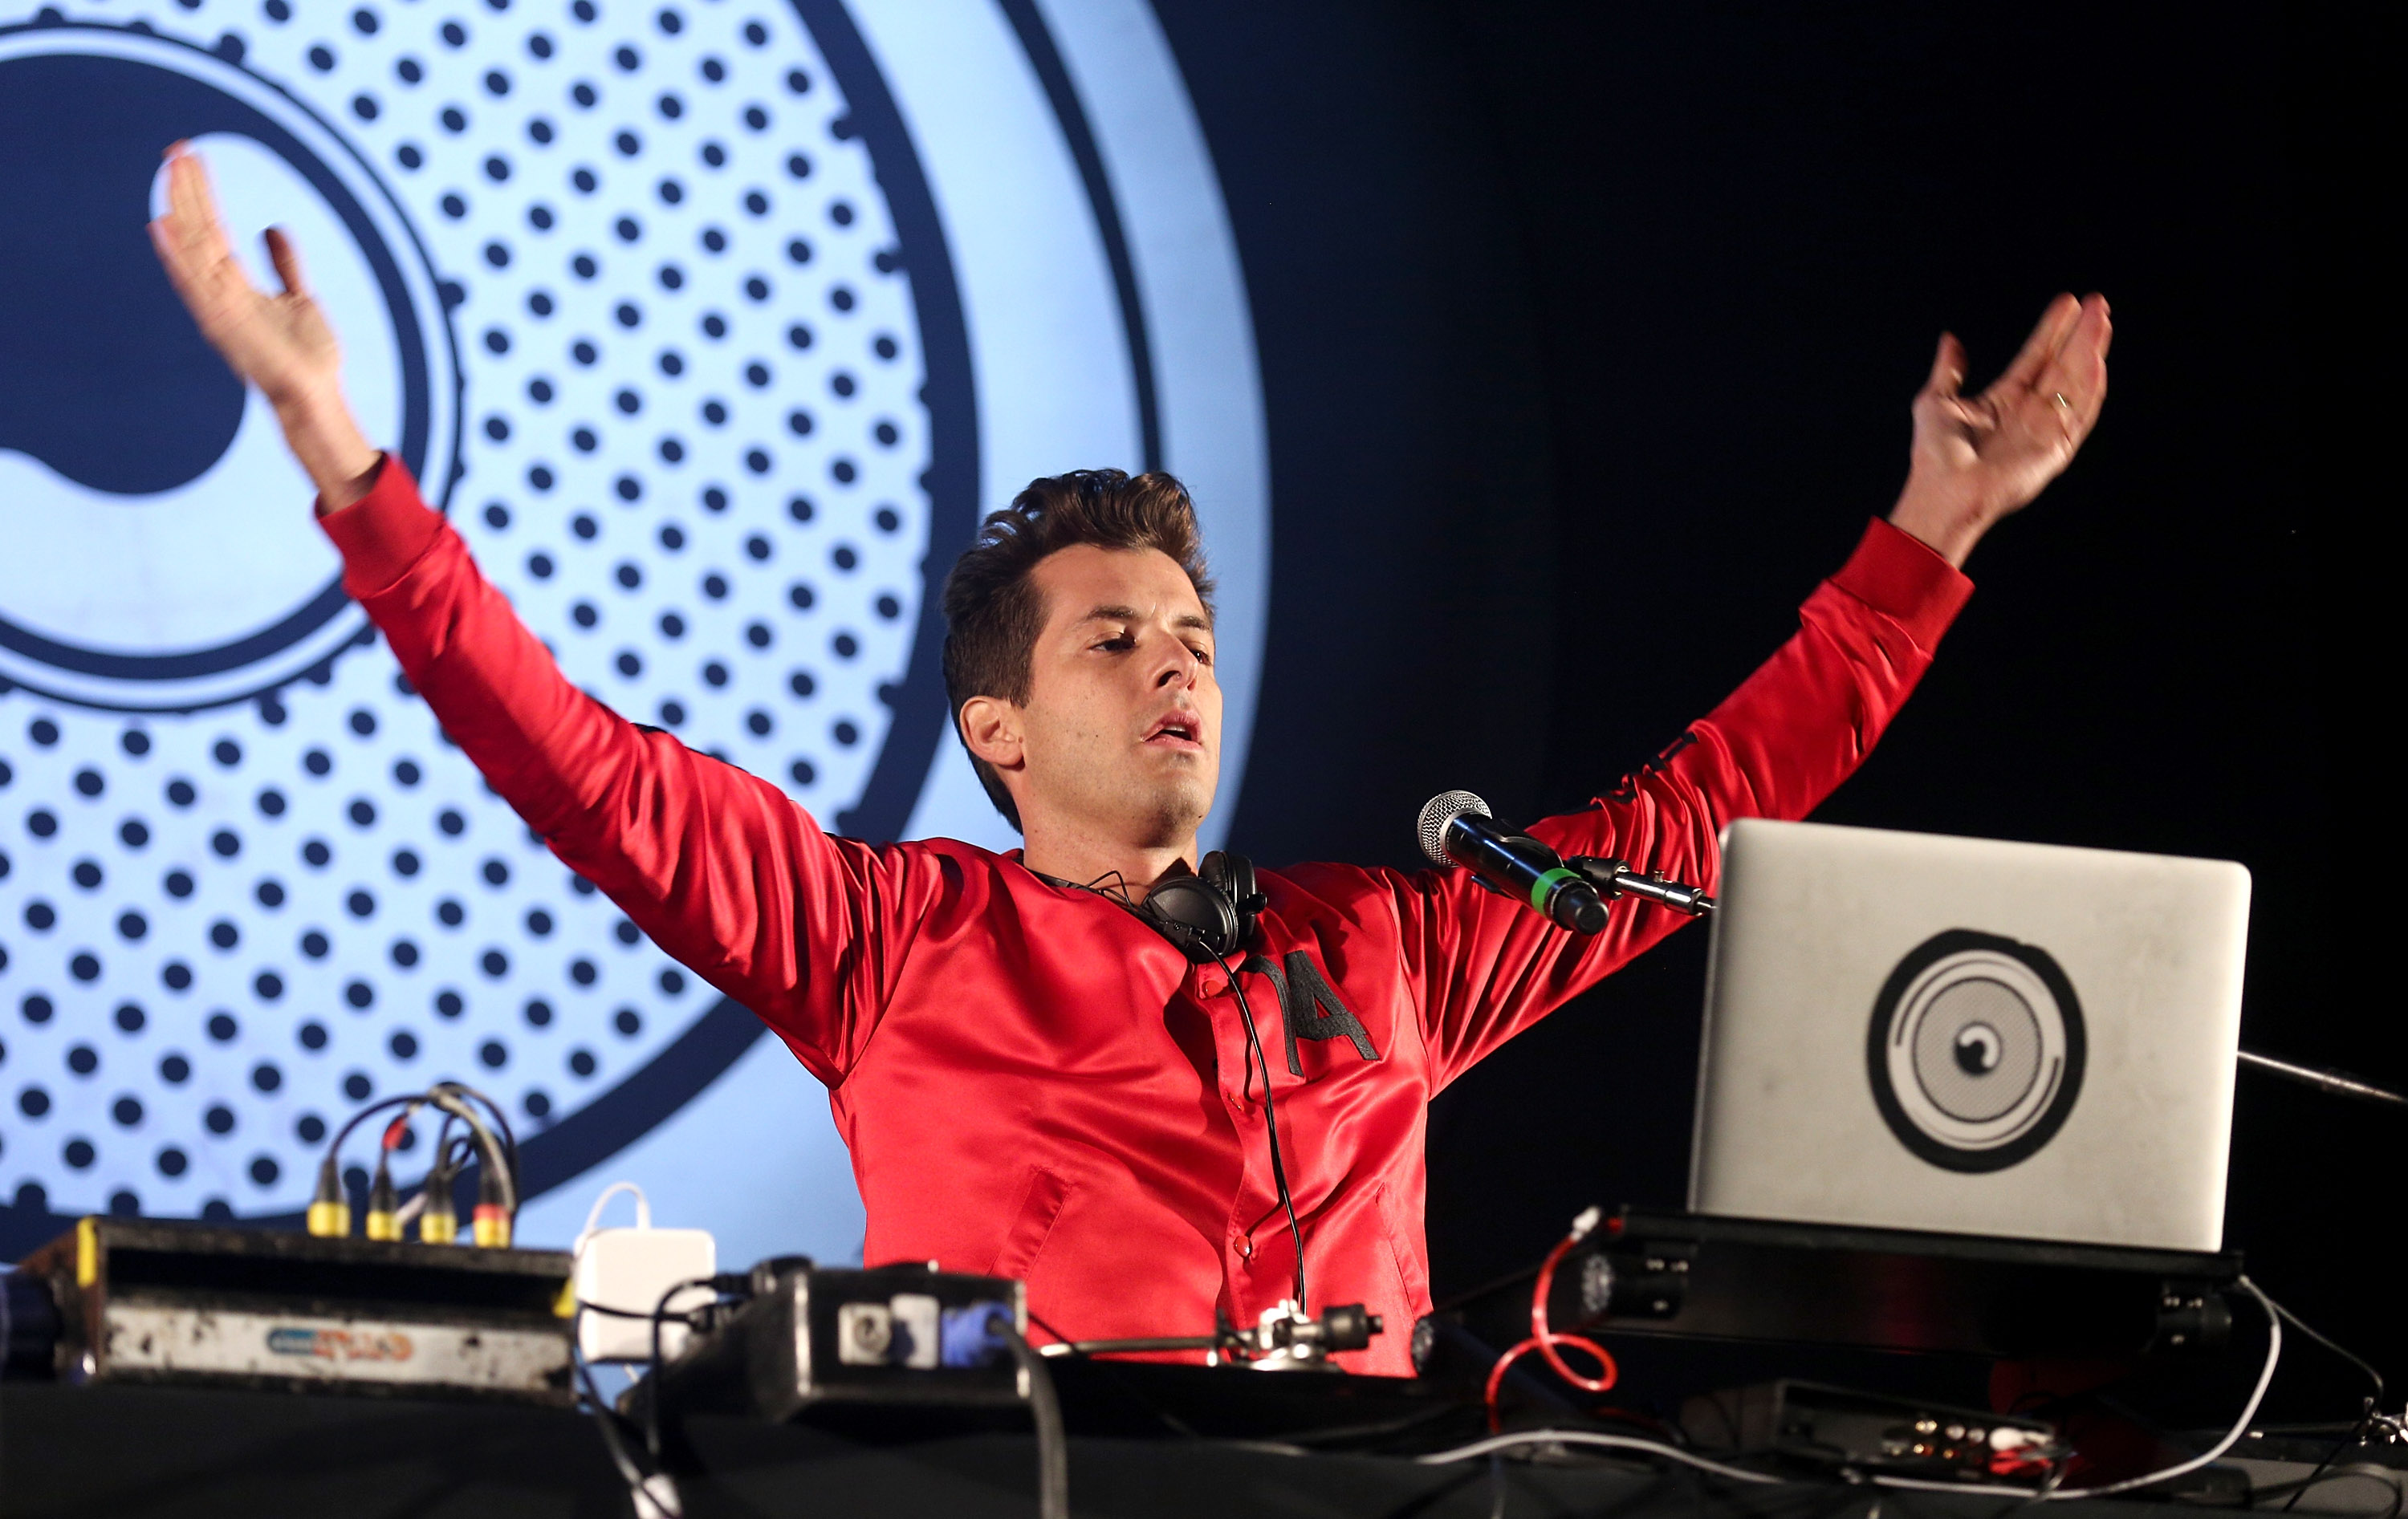 Mark Ronson performs in Oxfordshire on August 26, 2016